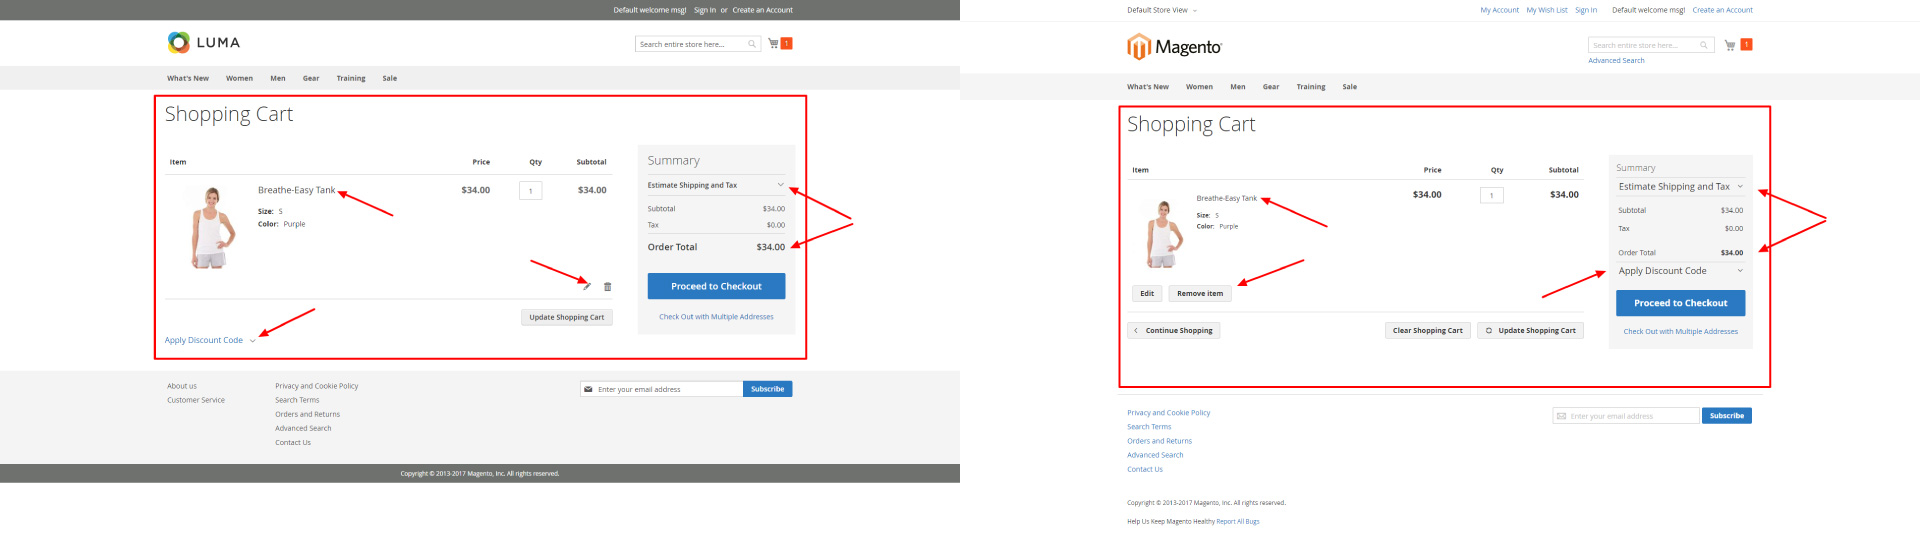 Magento 2 theme comparison Luma and Blank - cart page